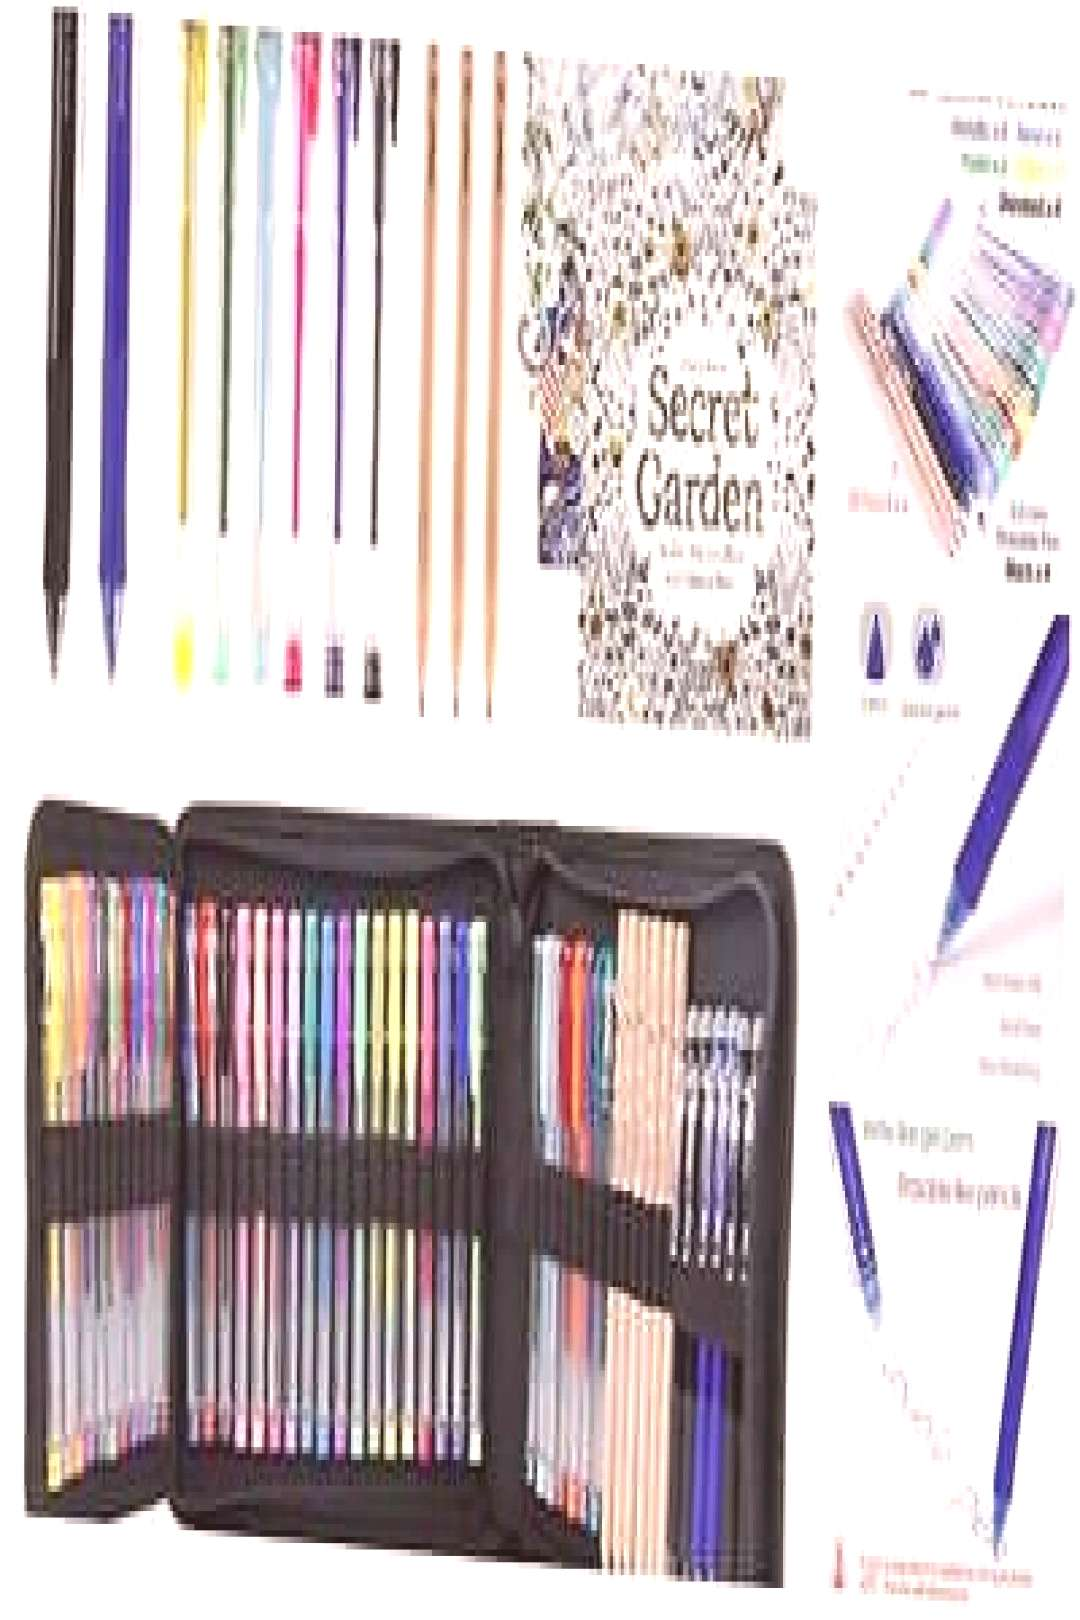 Larkpad 42 Gel Pens Set - 6 Retractable Erasable Gel Pens36 Color Gel Pens